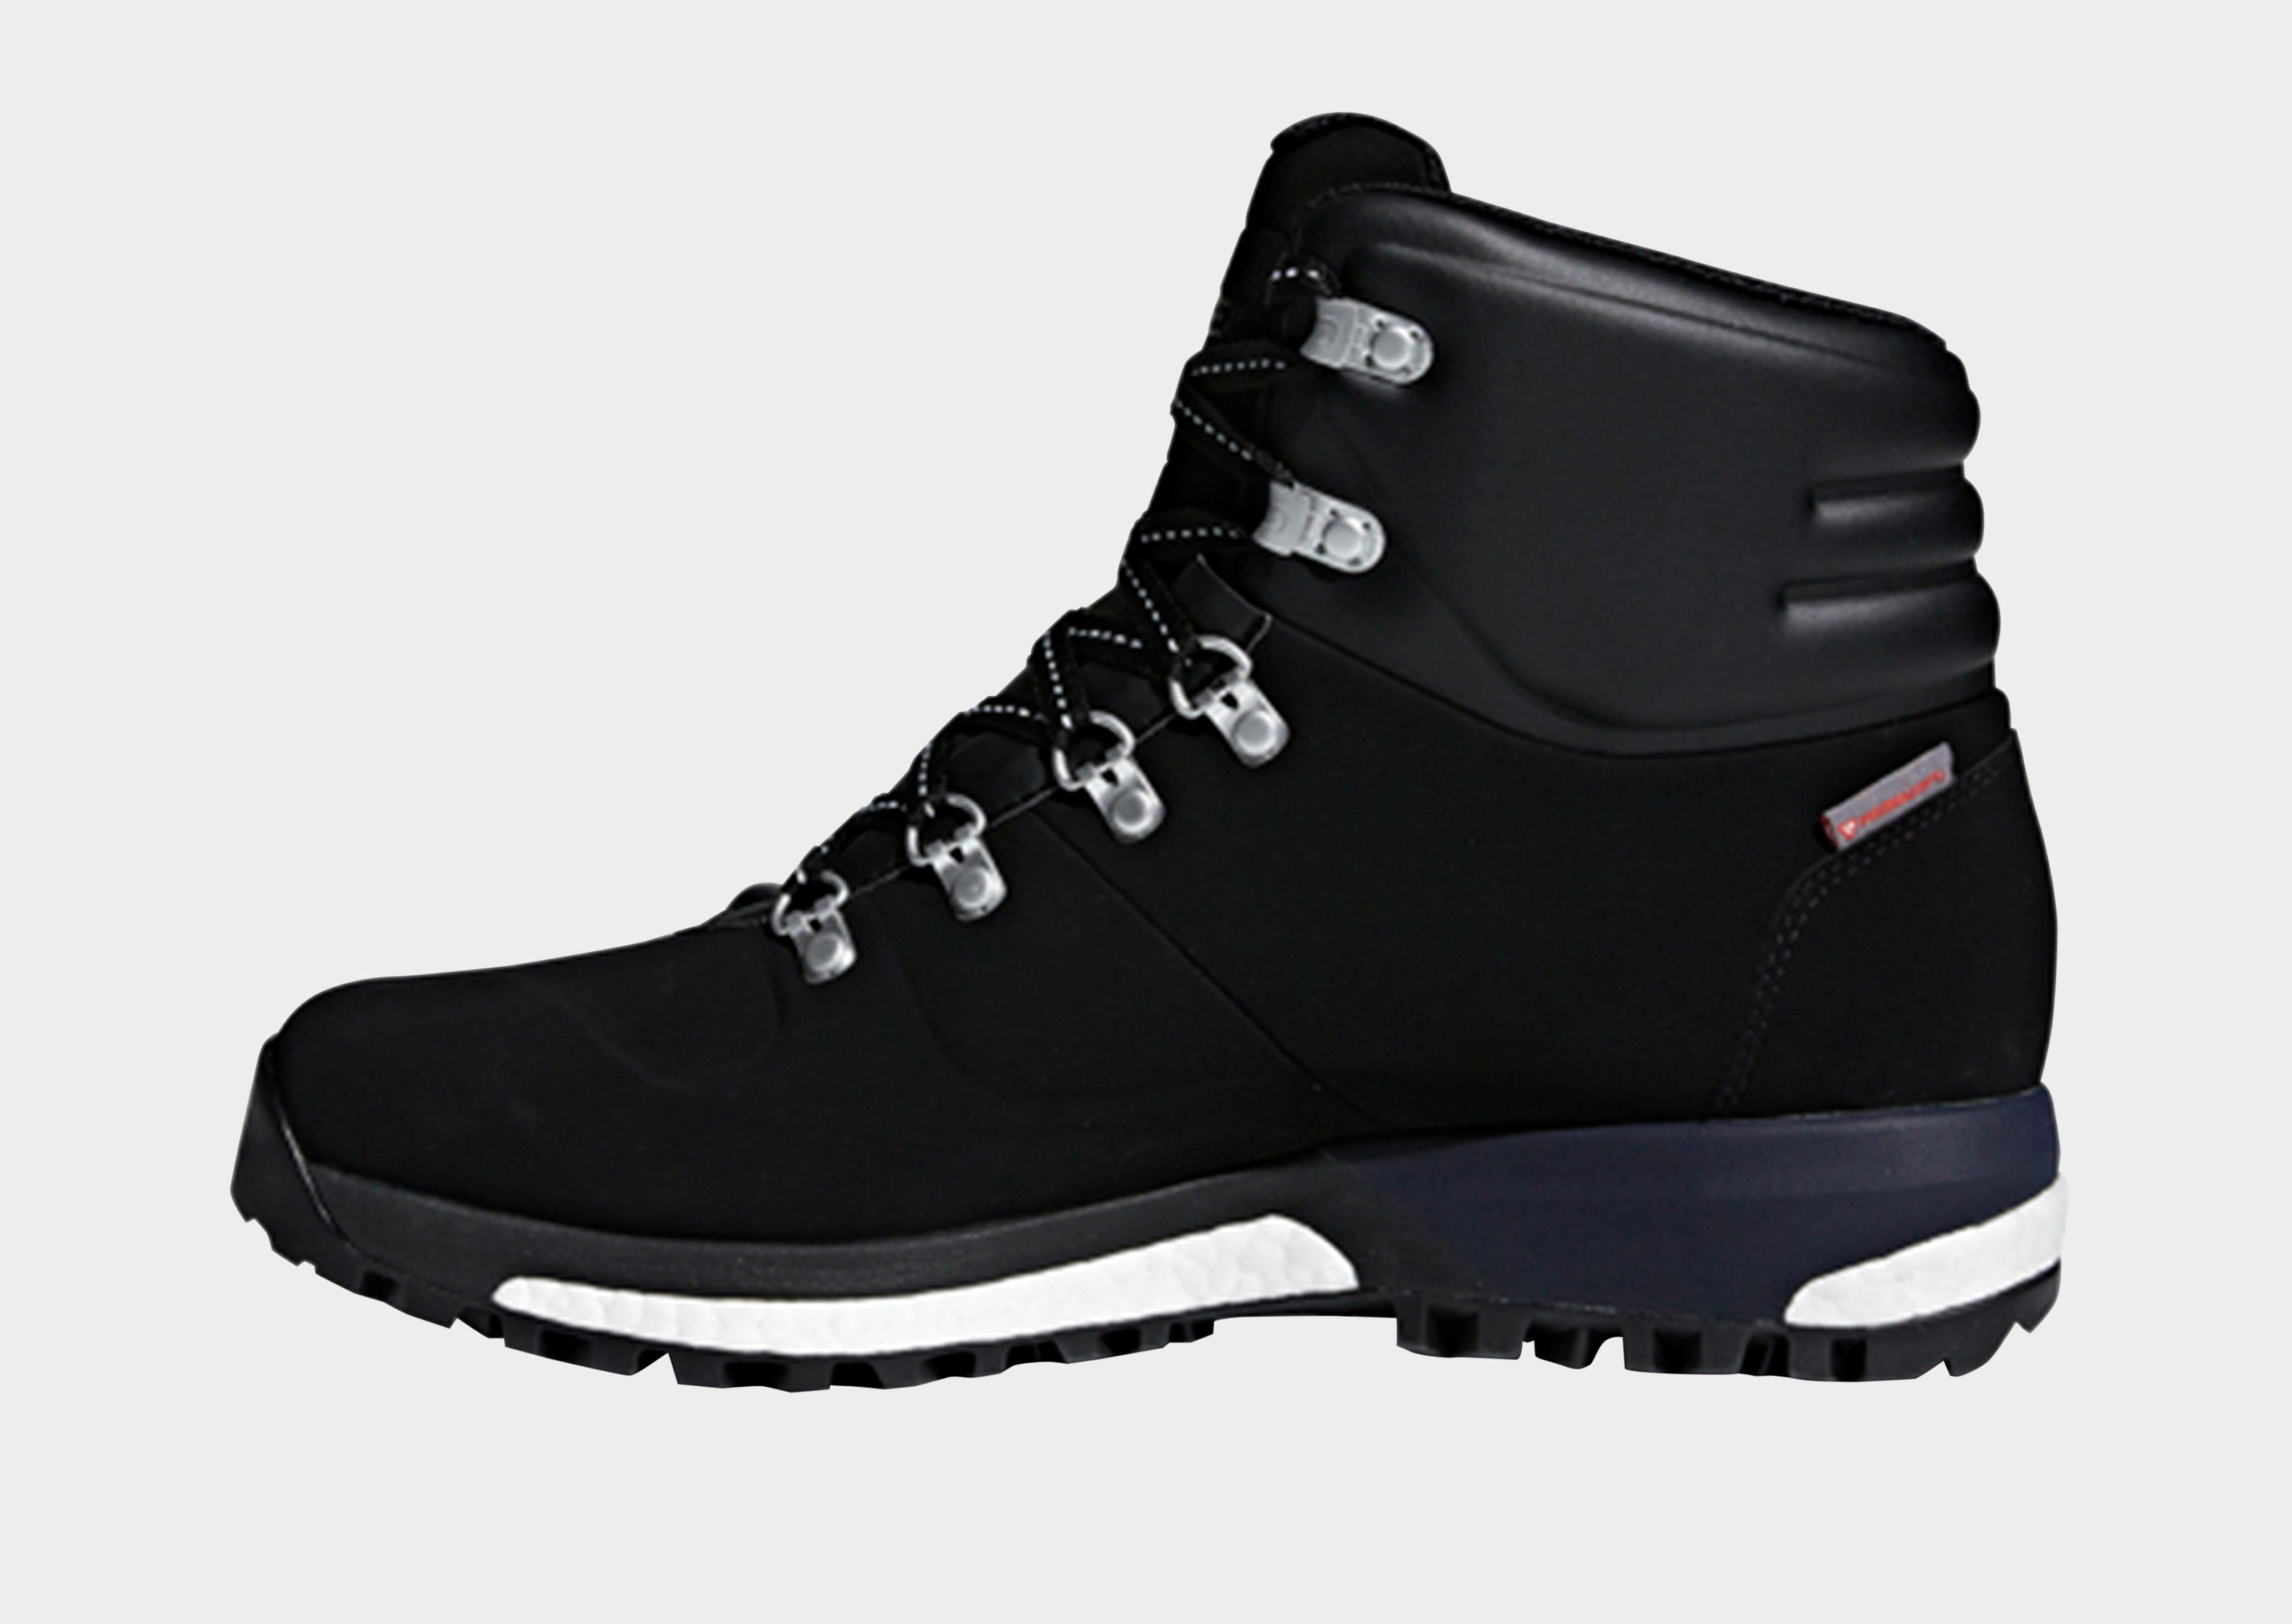 reputable site b5ebb 424c2 Adidas Terrex Pathmaker Climawarm Boots in Black for Men - L